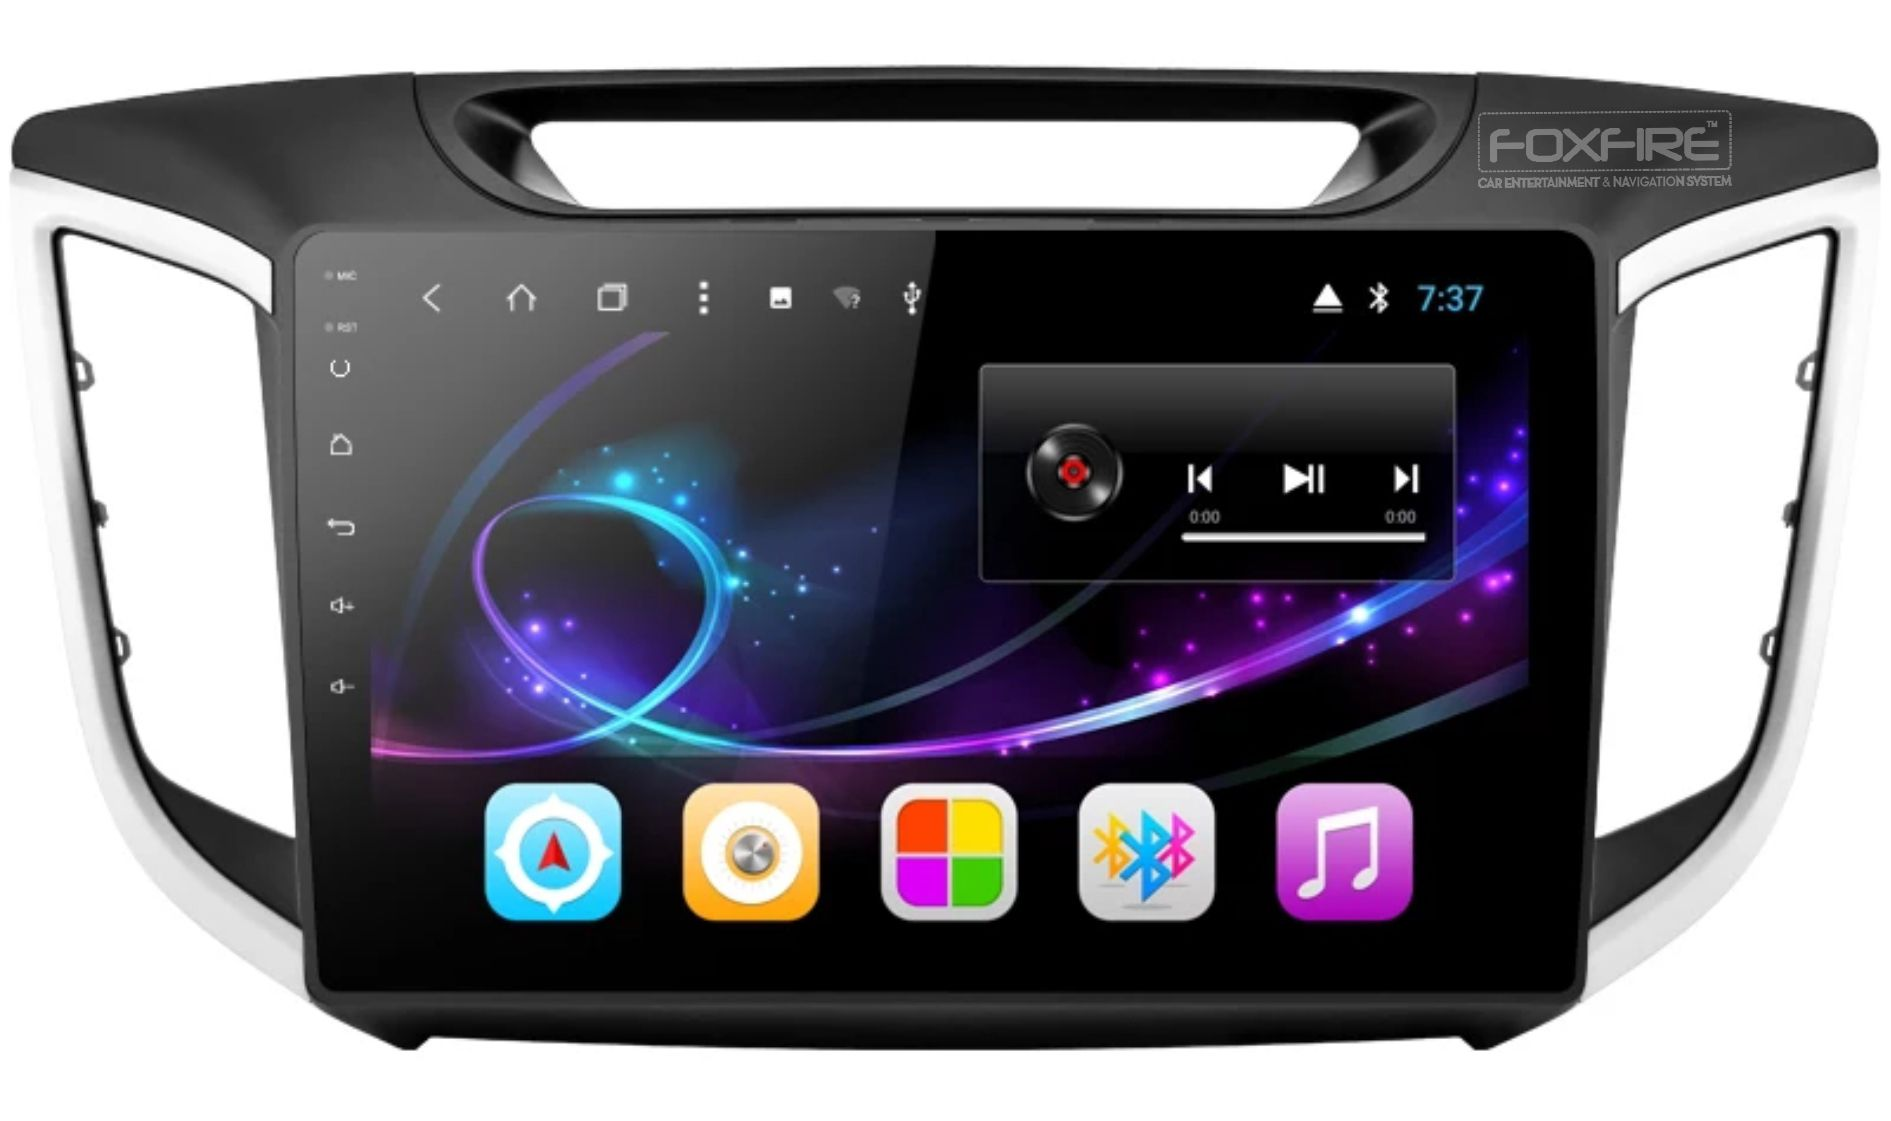 Buy Gps Navigation System For Your Car Foxfire Hyundai Creta